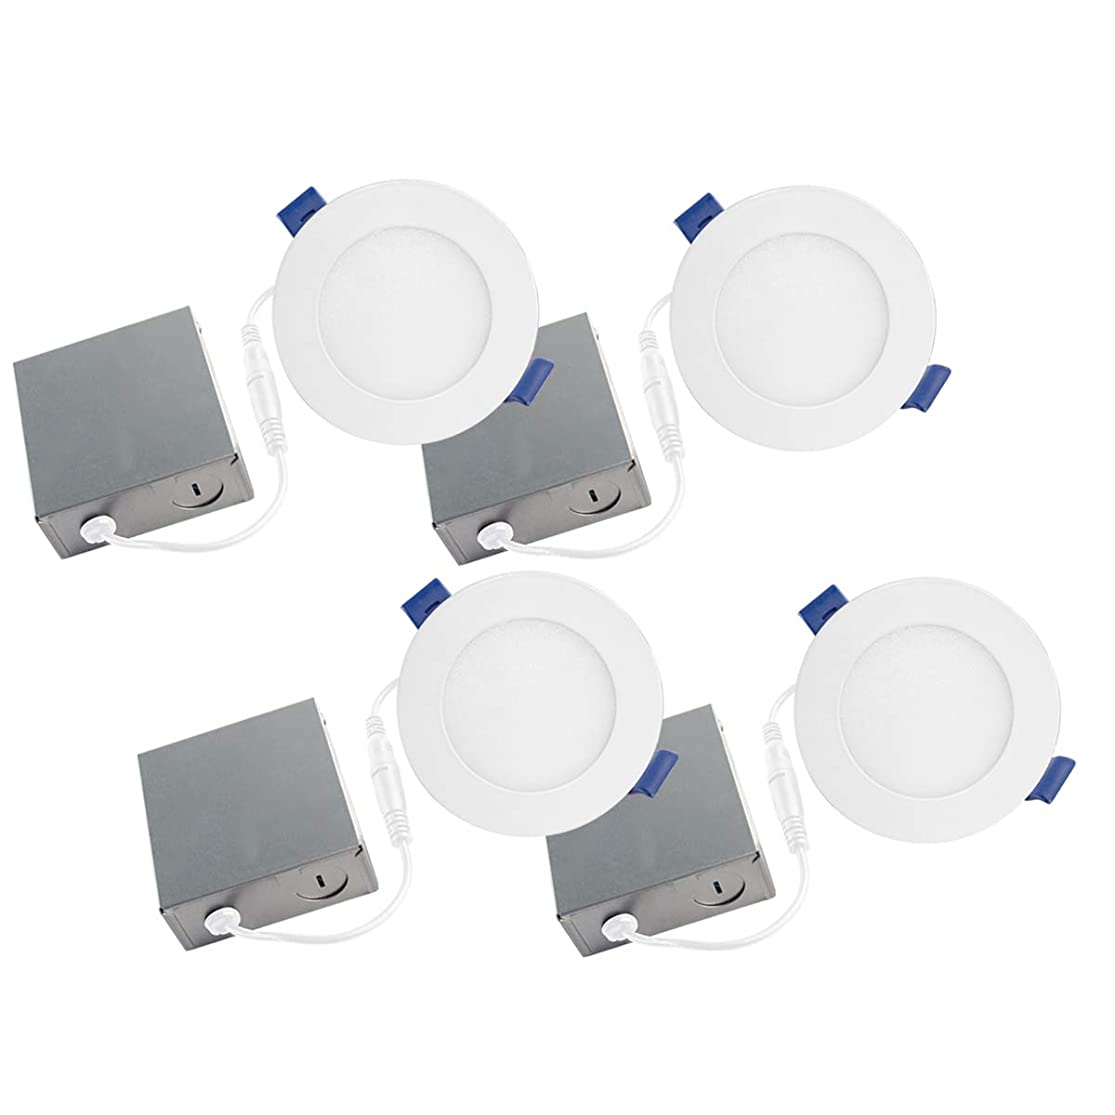 Bazz SLDSKB4W4 Slim Disk Integrated LED Recessed Lighting Kit, Energy Star, Dimmable, Damp and Wet Location 4.25-in Matte White yqdvhagg1